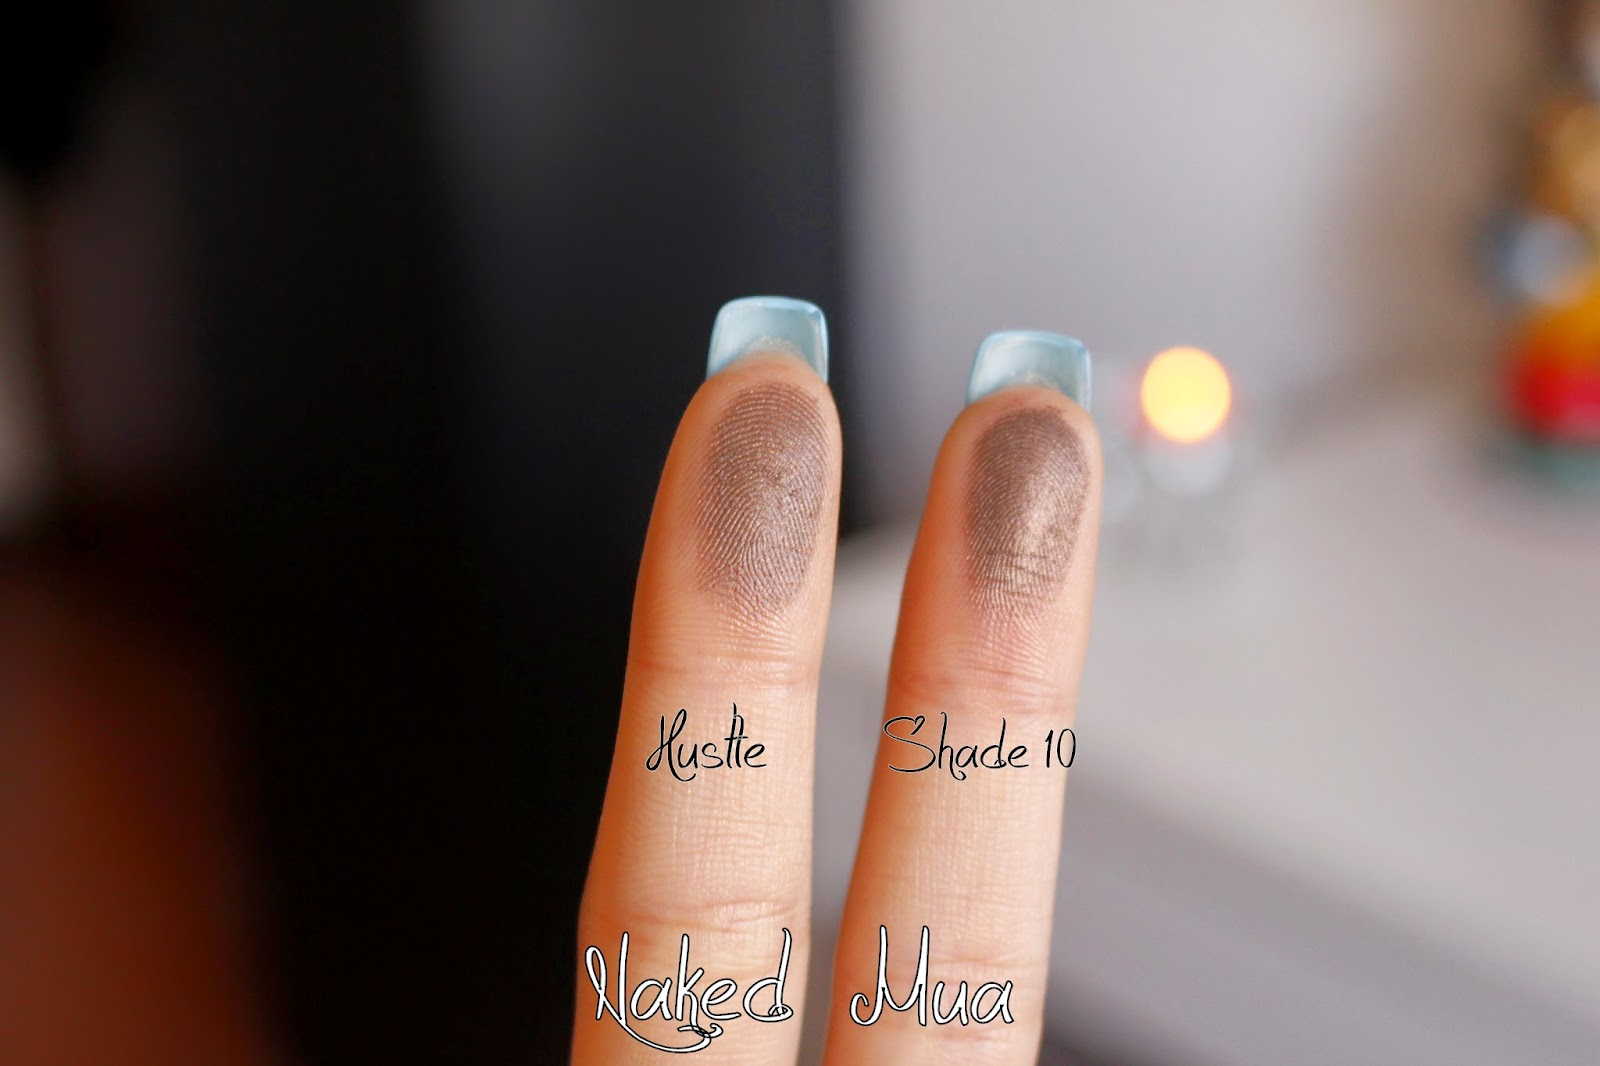 Naked Mua Hustle shade 10